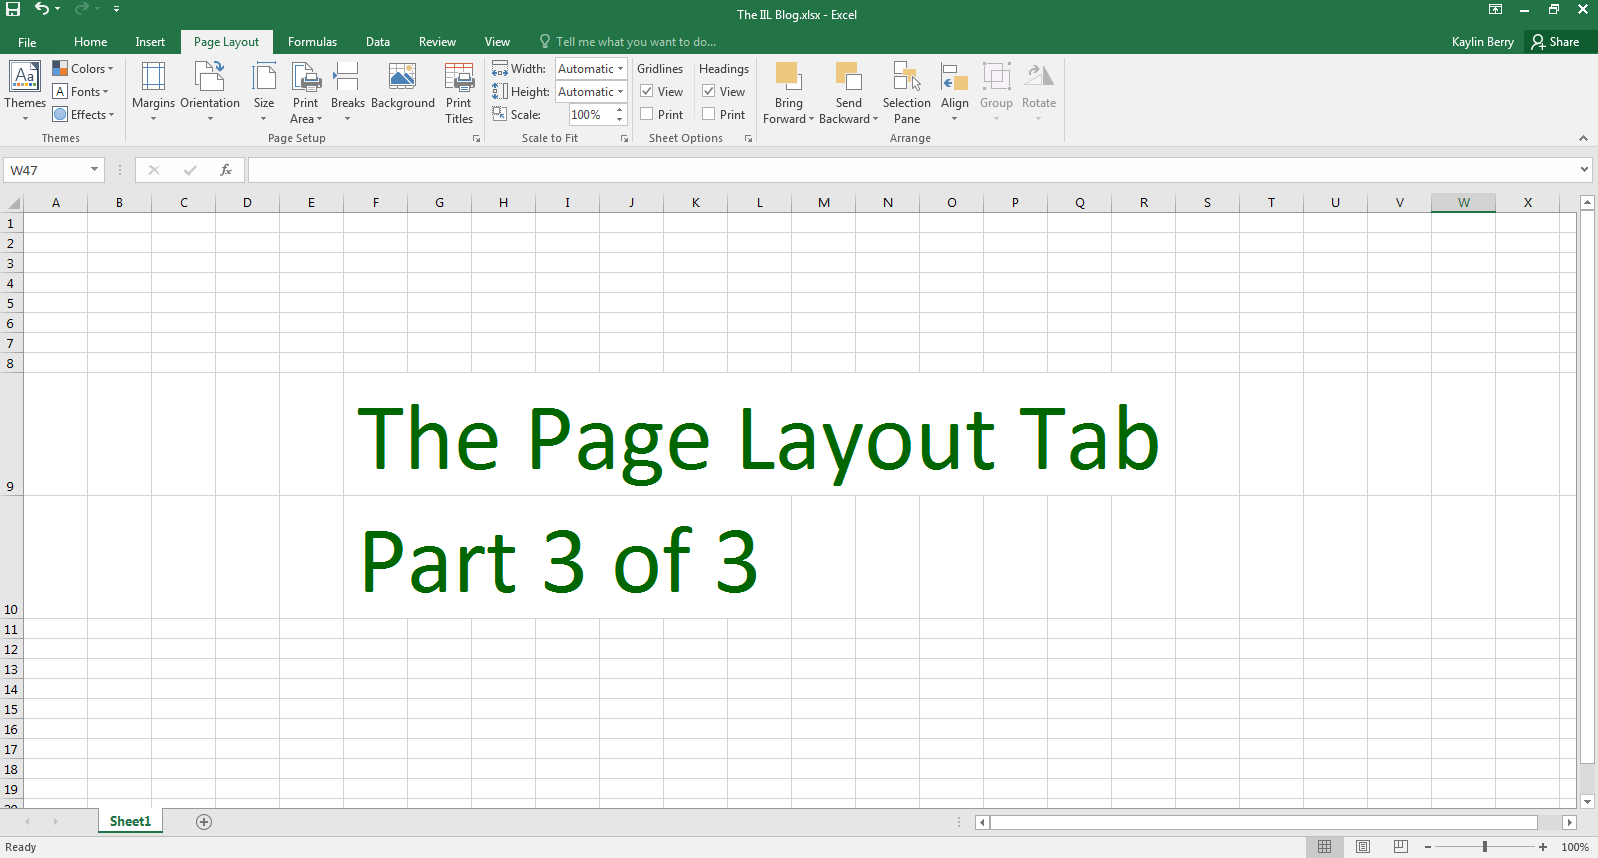 Excel The Iil Blog